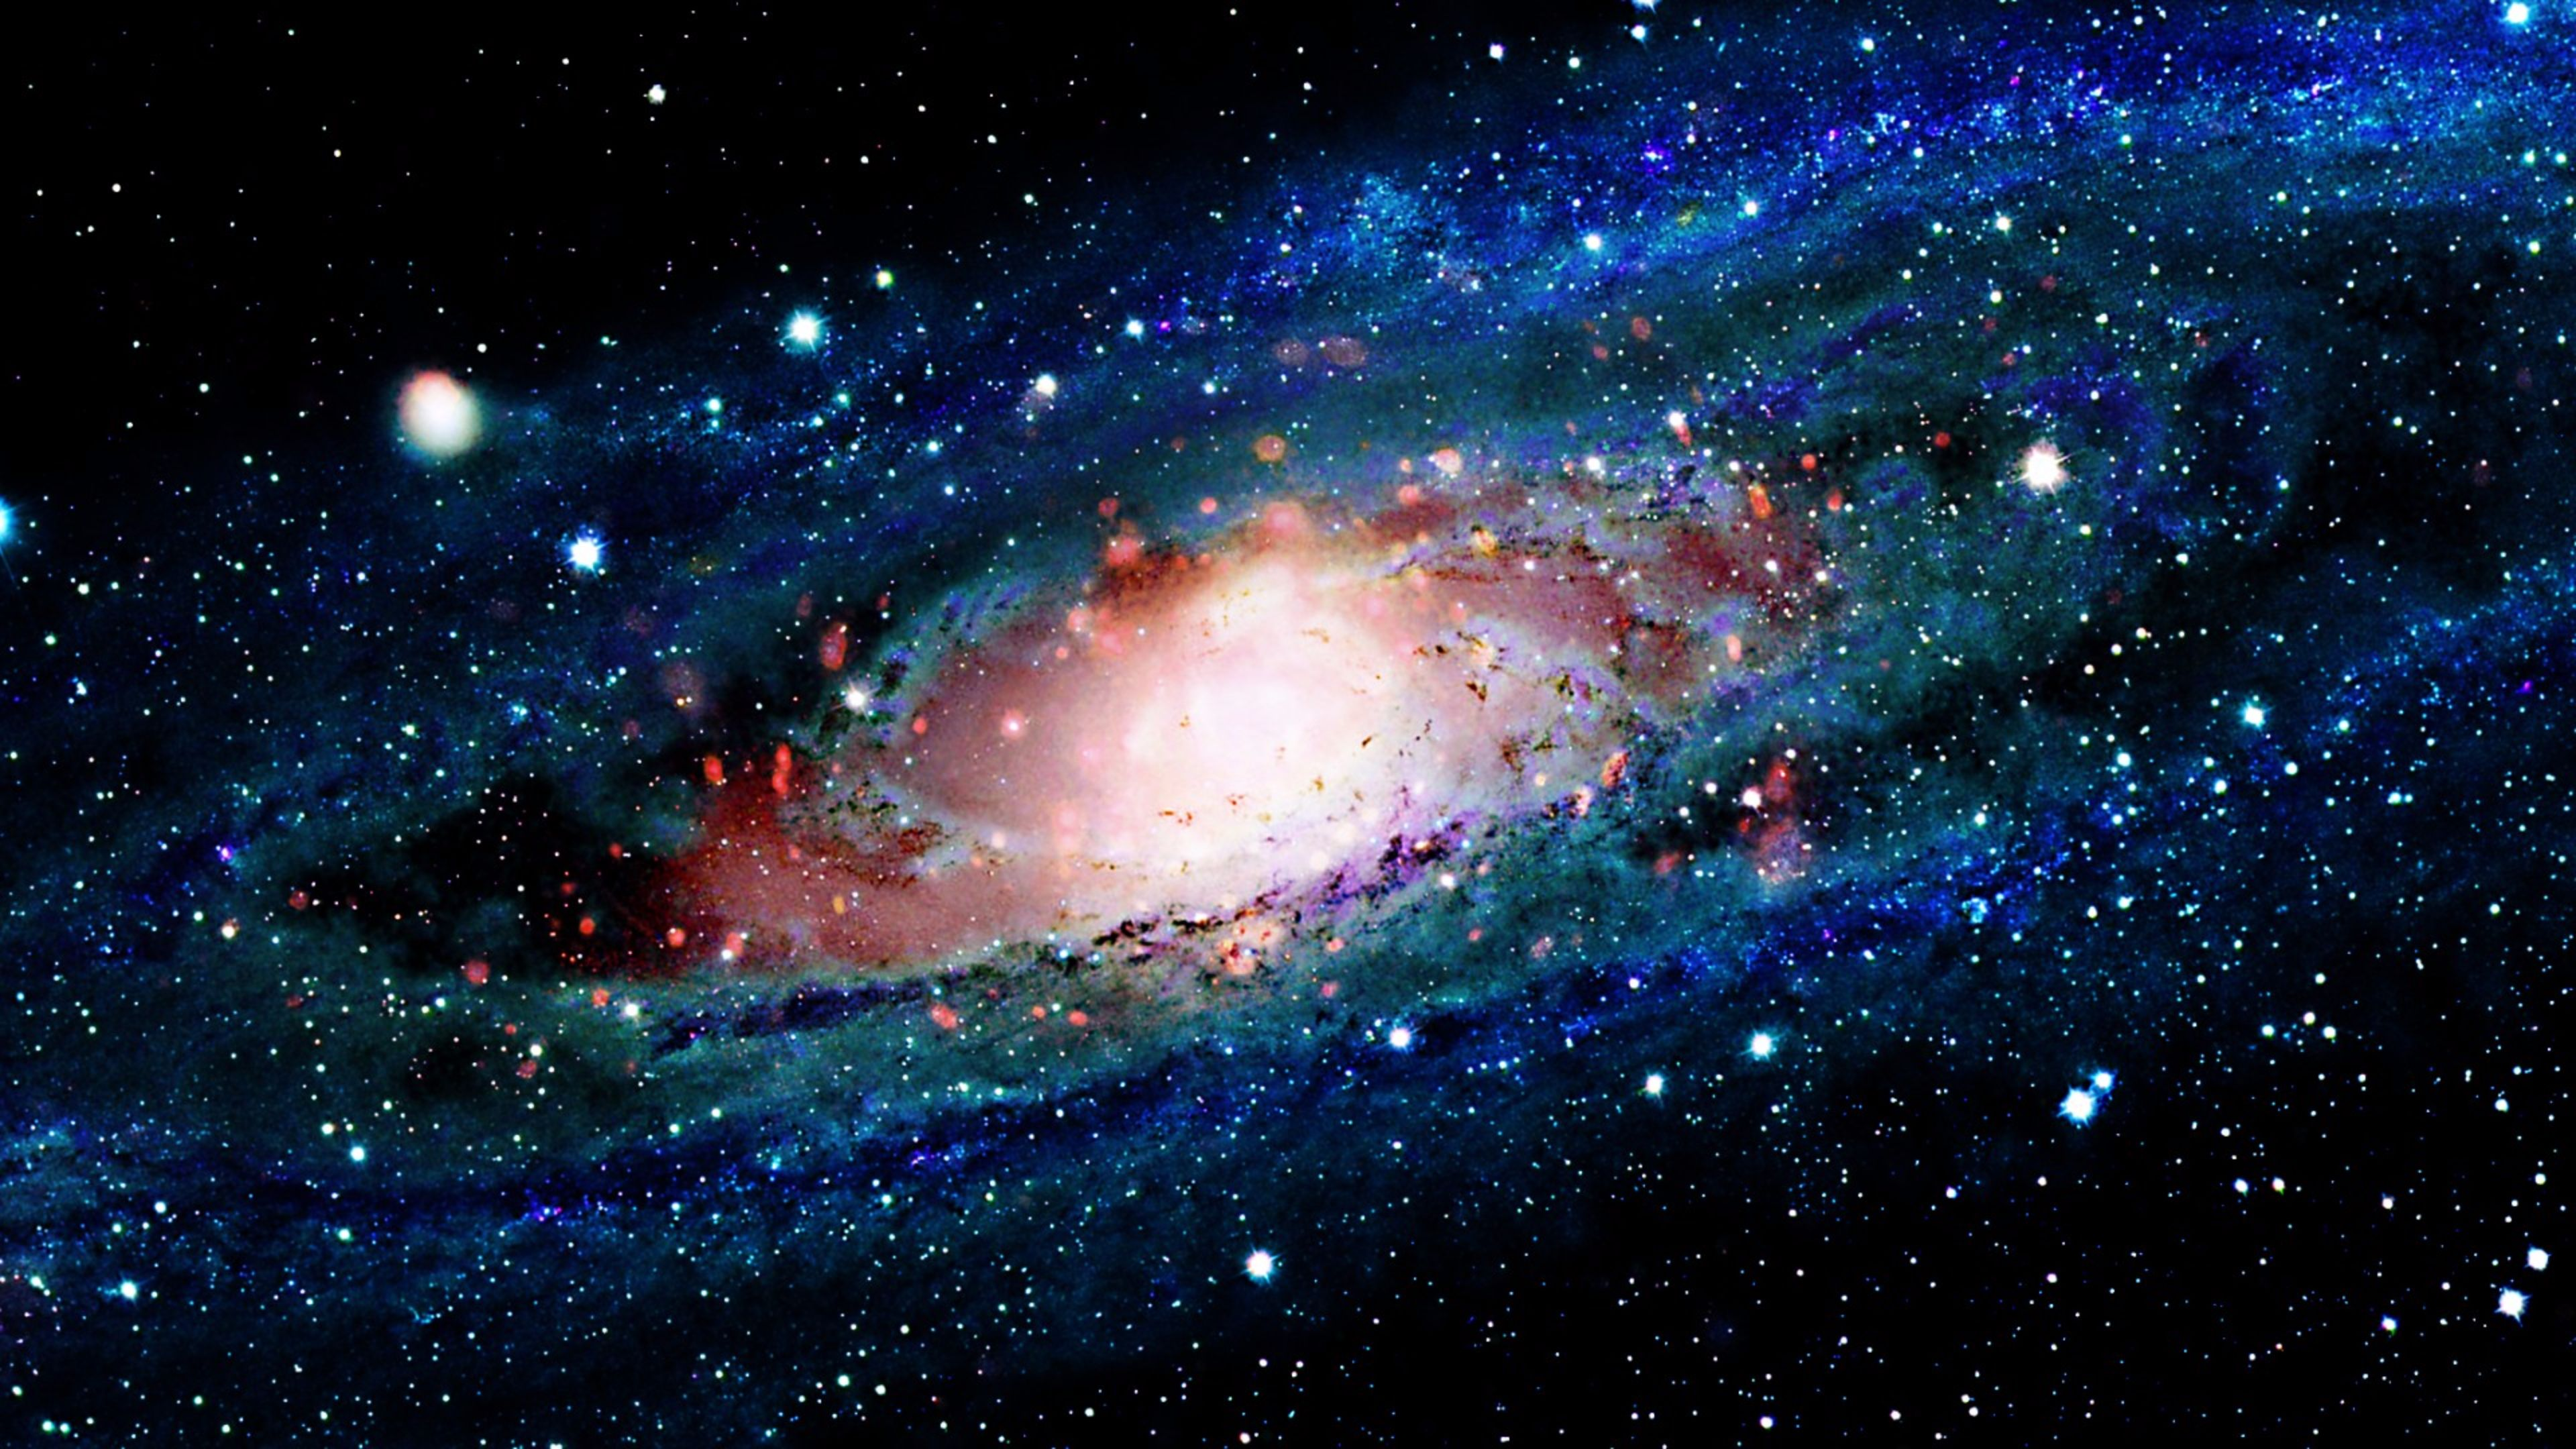 Galaxy Space Wallpaper 4K - Android Apps on Google Play